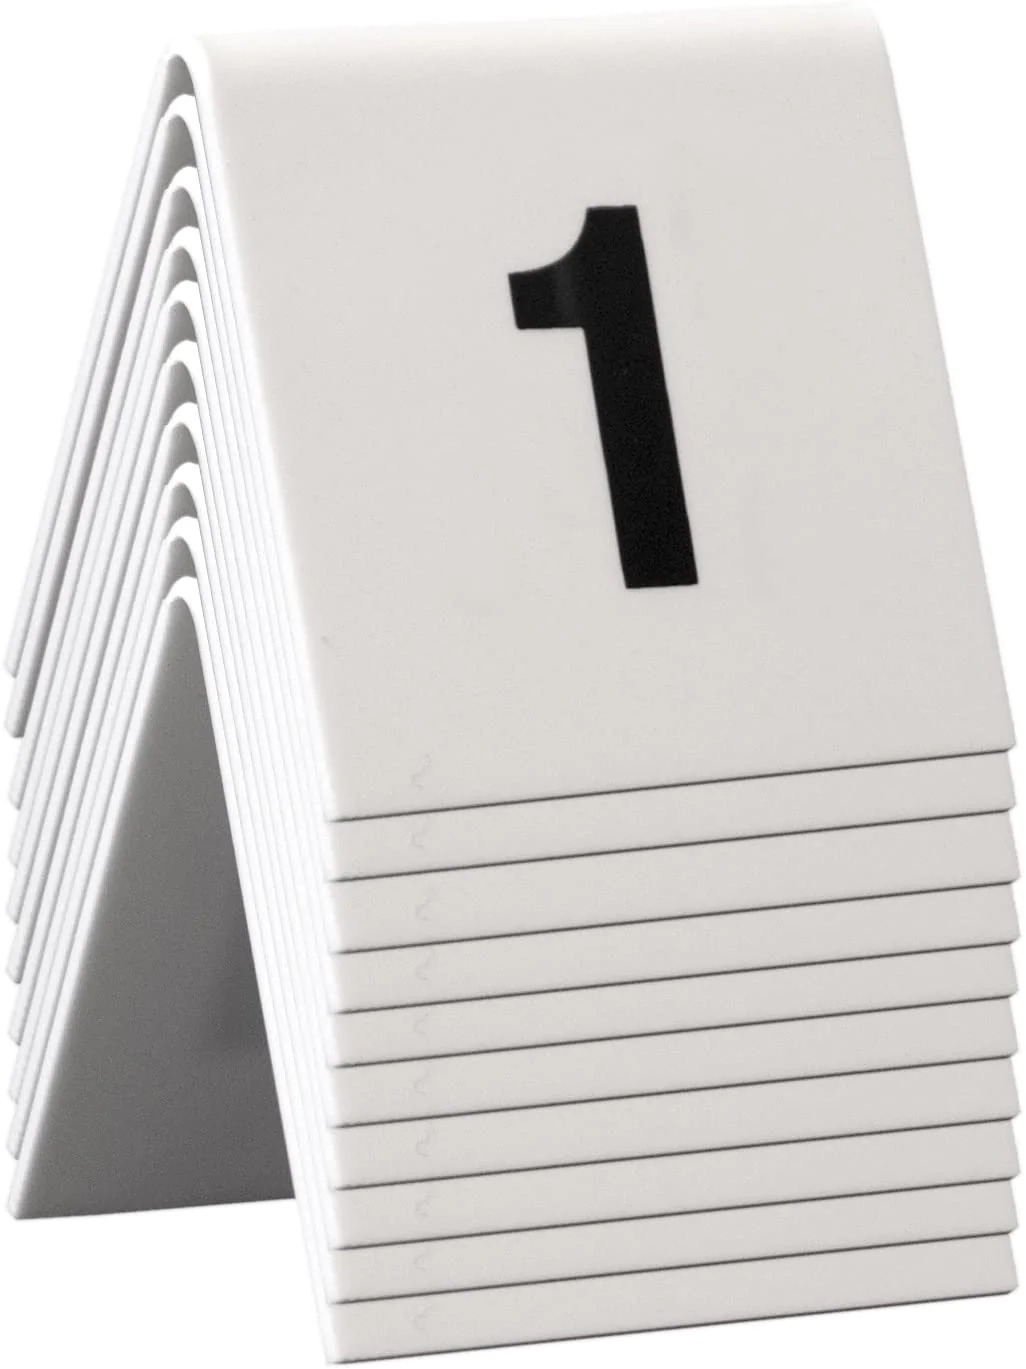 SECURIT TN-1-10-WT Table Boards - Accessories Signssecurit® Table Numbers From 1-10 - White Acrylic Standards With Black Numbers - Set Of 105,2X5,2X4,5Cm   0,1Kgwhite